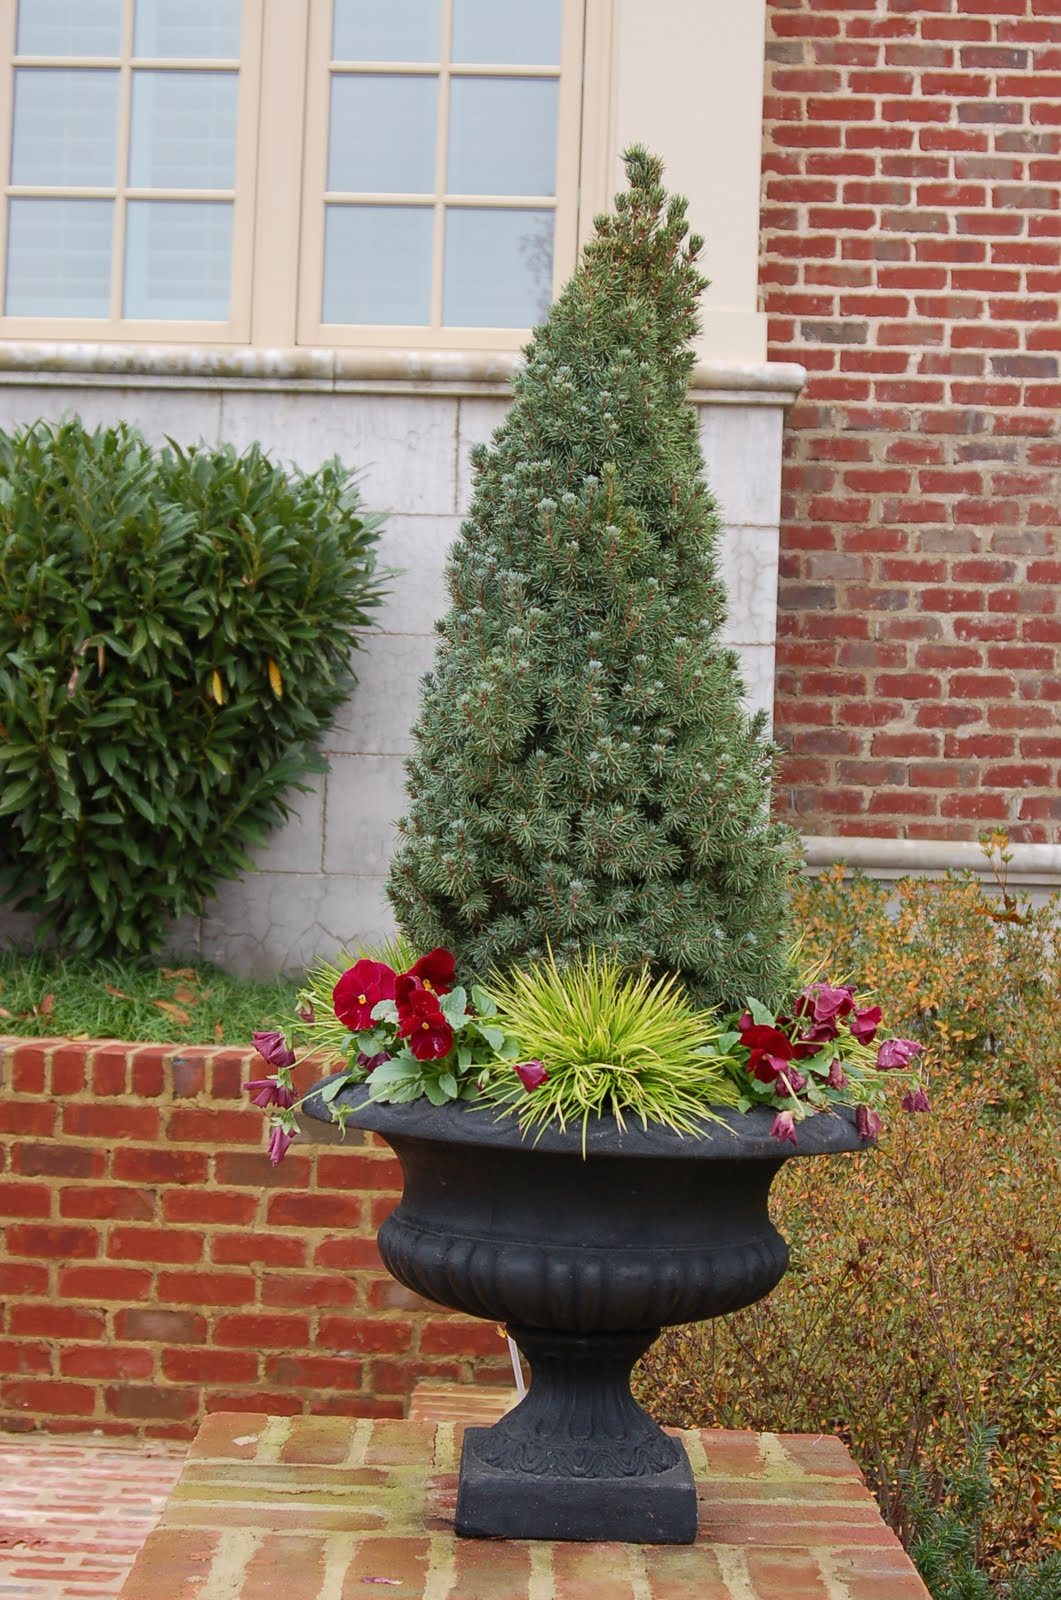 Bwisegardening Day 58 Christmas Tree Containers